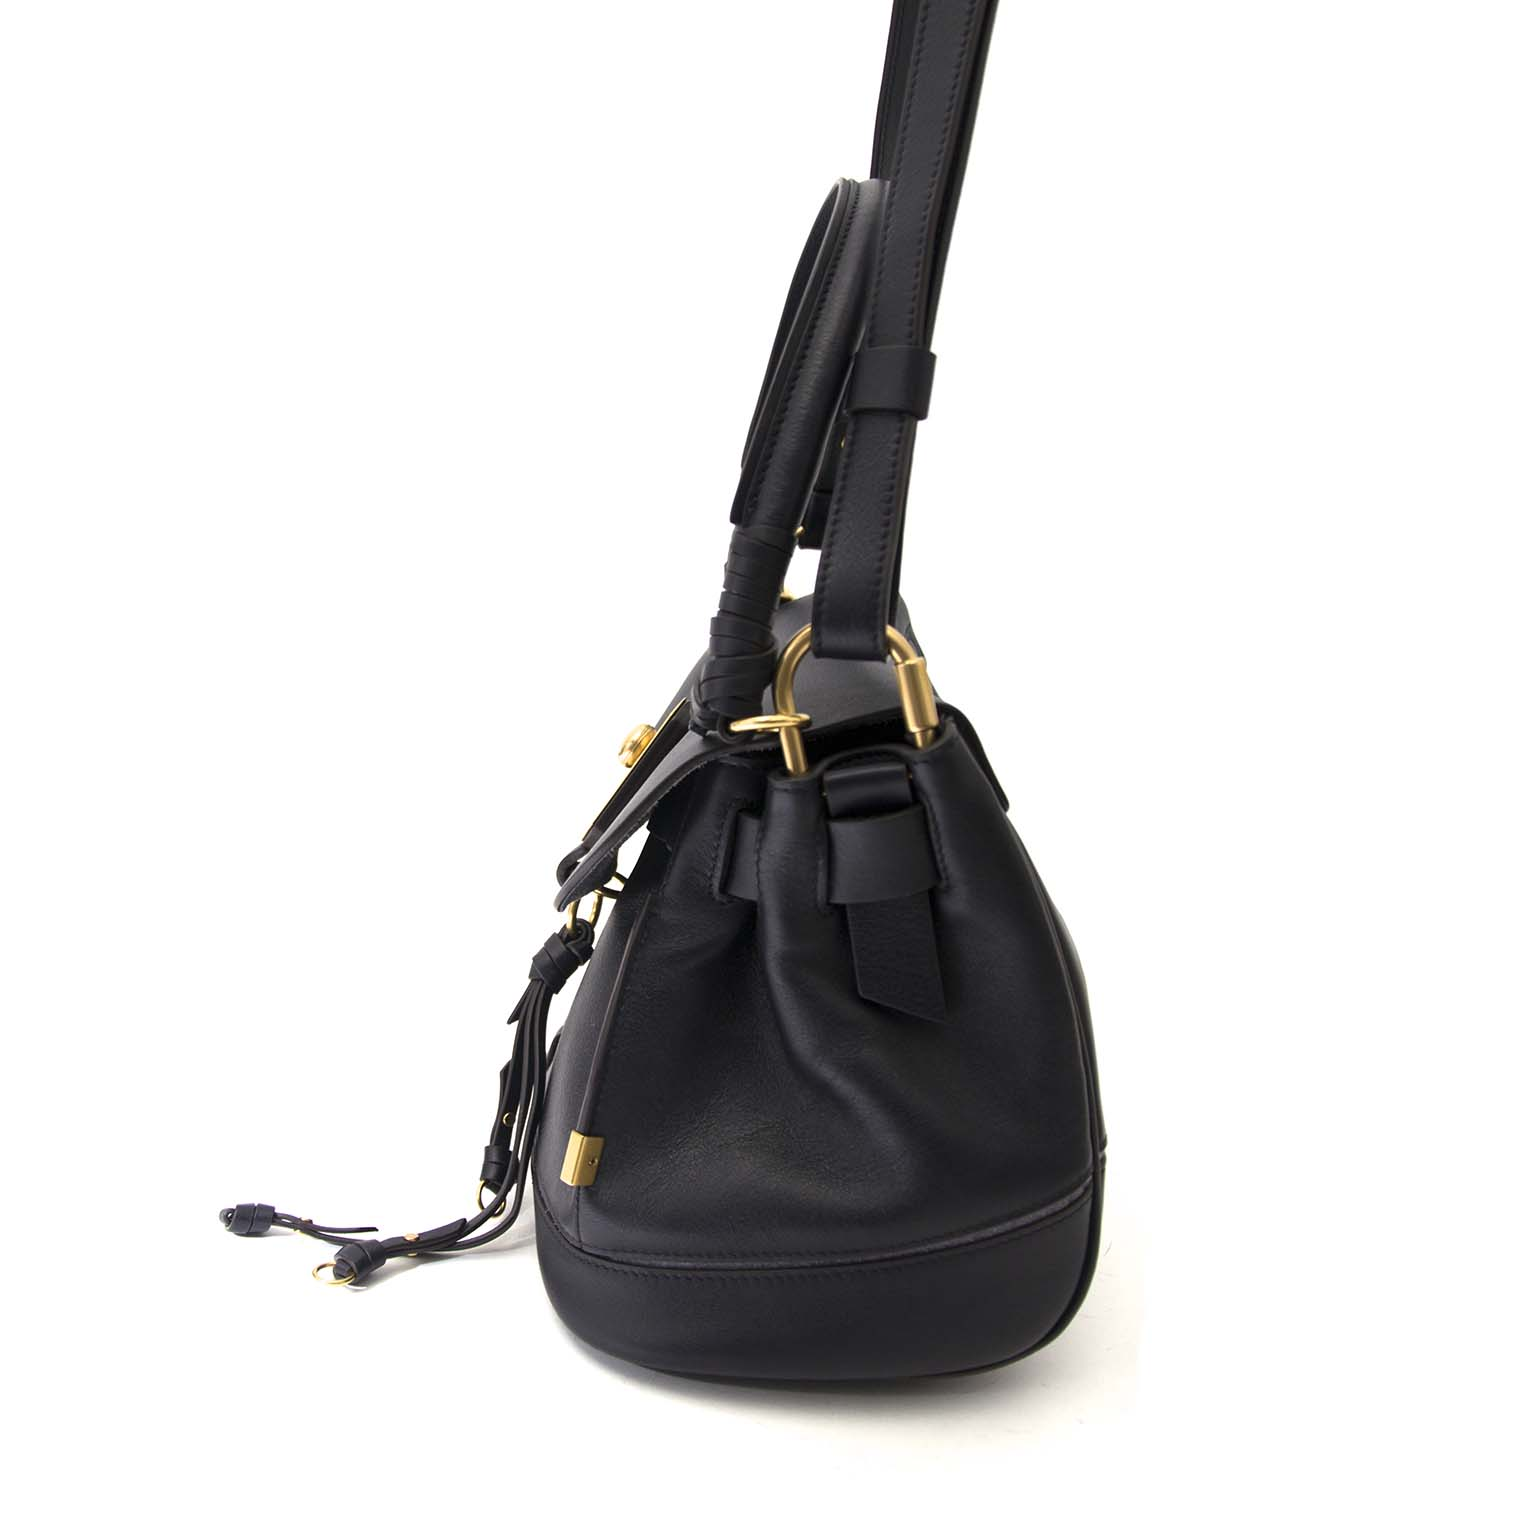 koop veilig online jou tweedehand Chloé Black Leather Owen Shoulderbag (